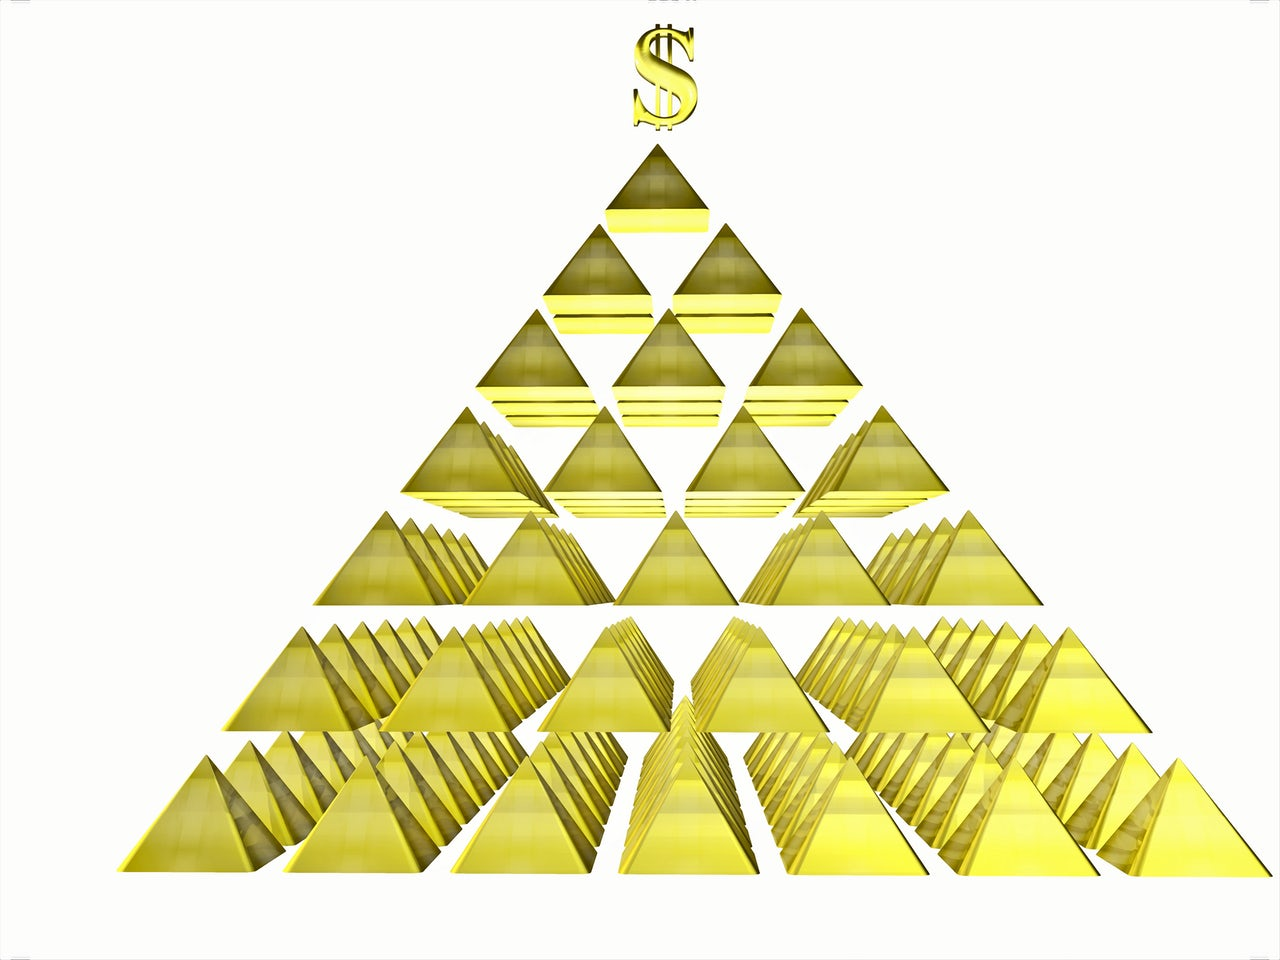 Pyramid schemes target Snapchat teens | The Outline